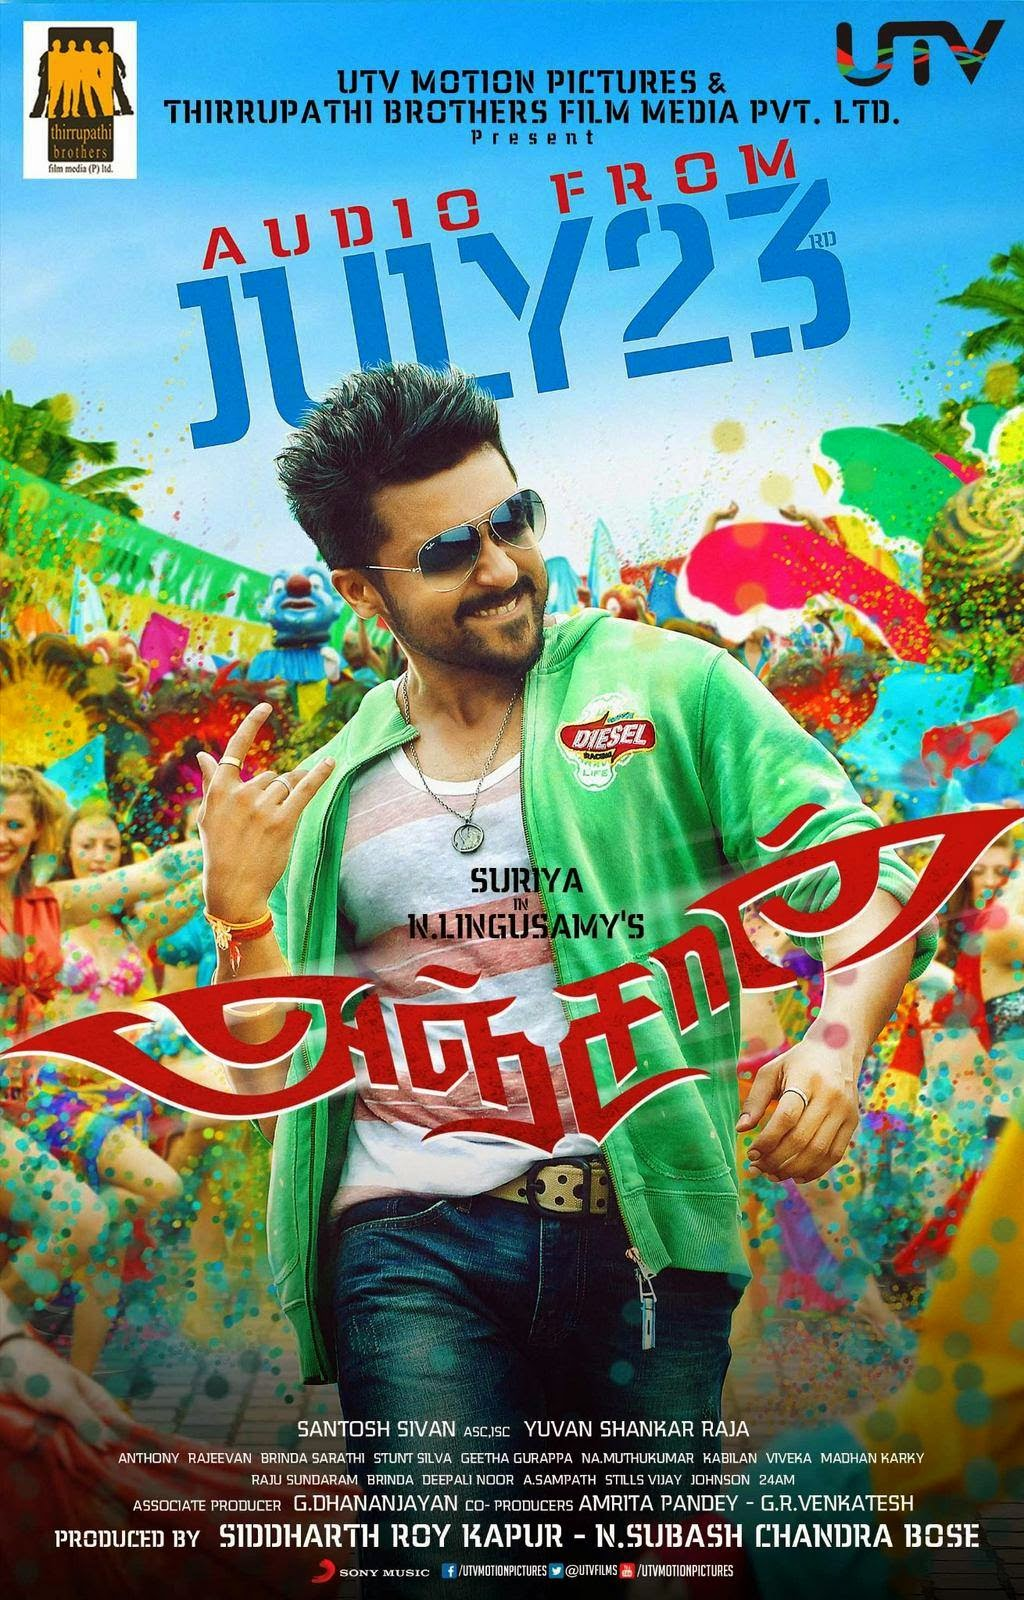 surya sikindar stills in hd (wallpapers) - actor surya masss movie